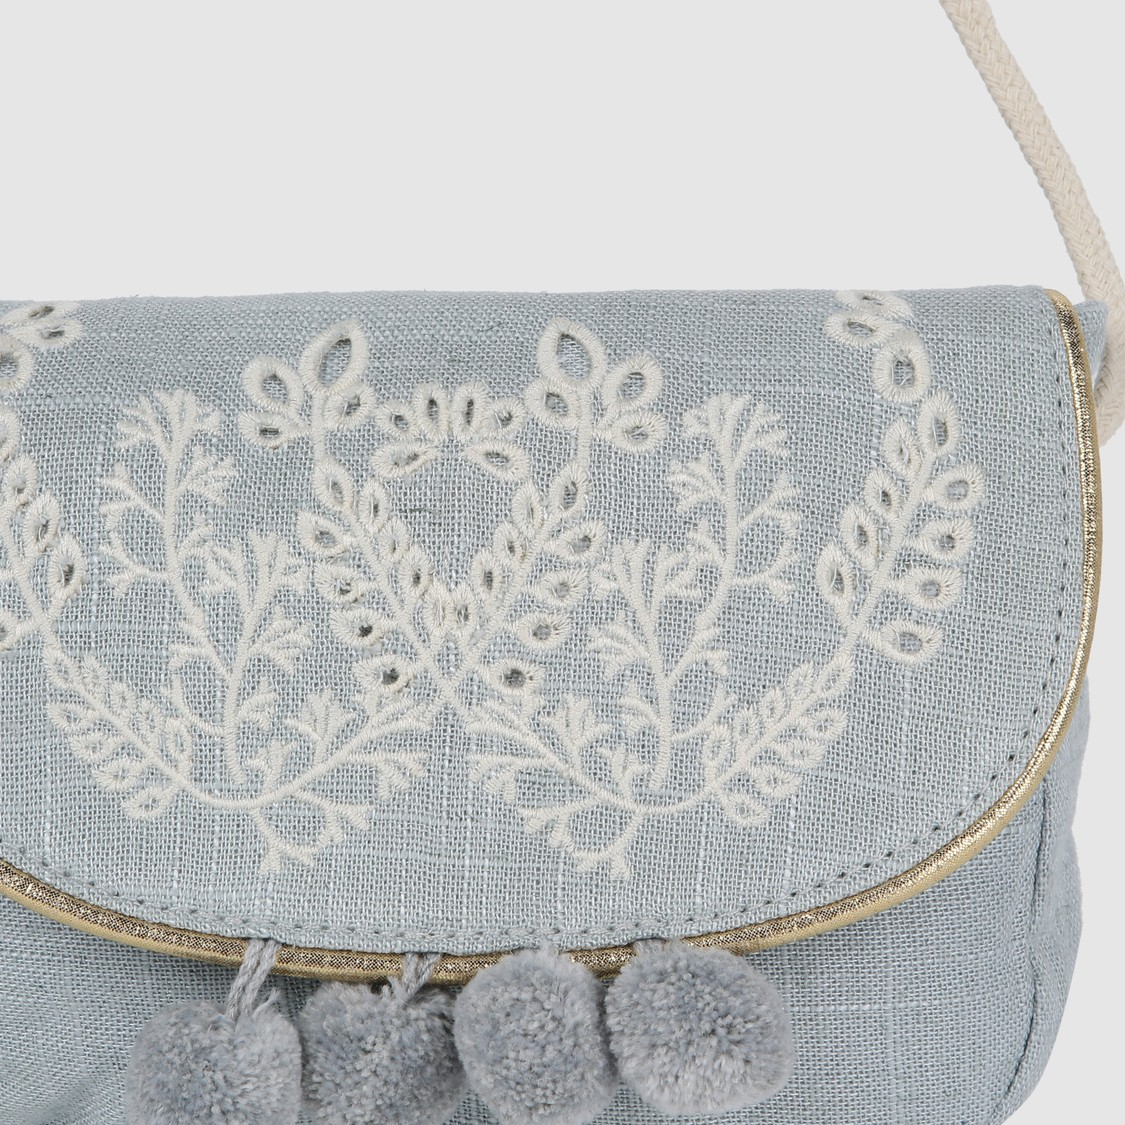 Embroidered Crossbosy Bag with Flap and Pom Pom Detail